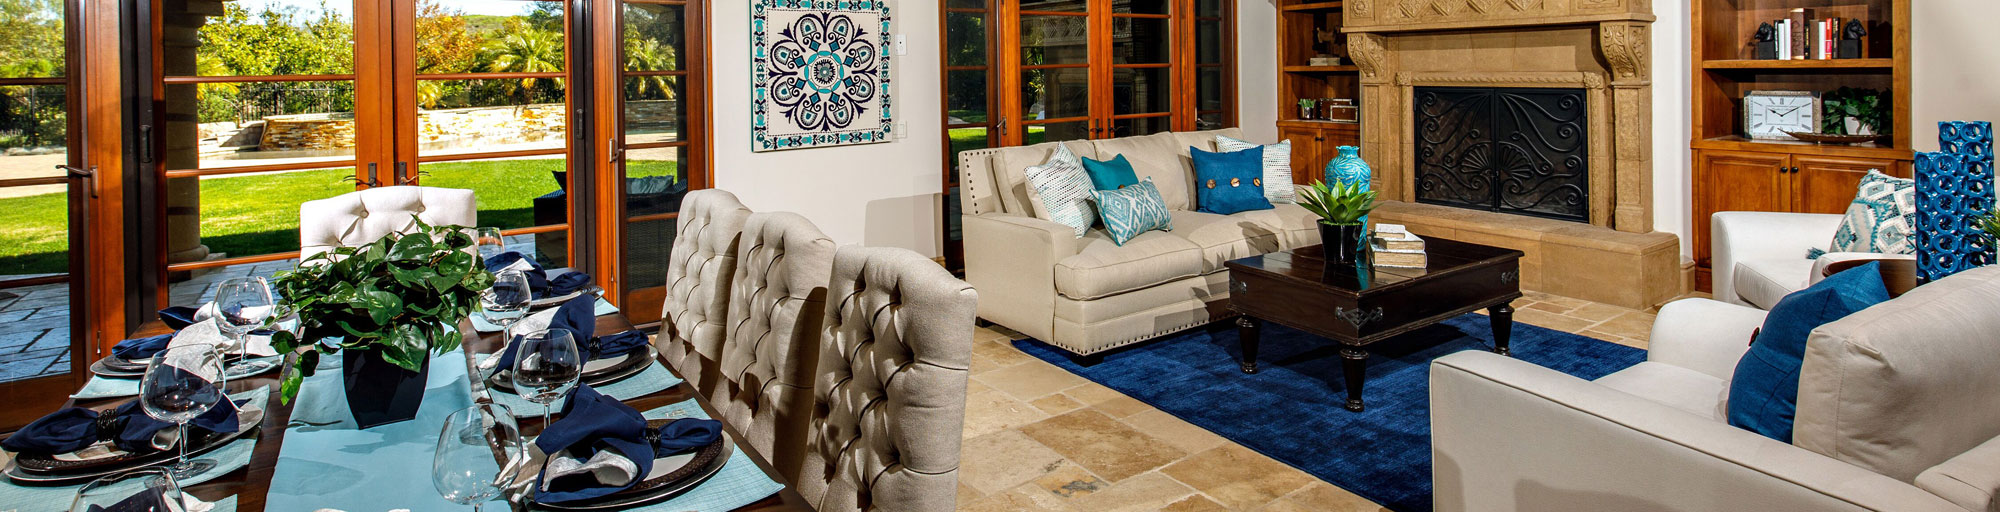 Living room and dining room staging with beige and blue accests